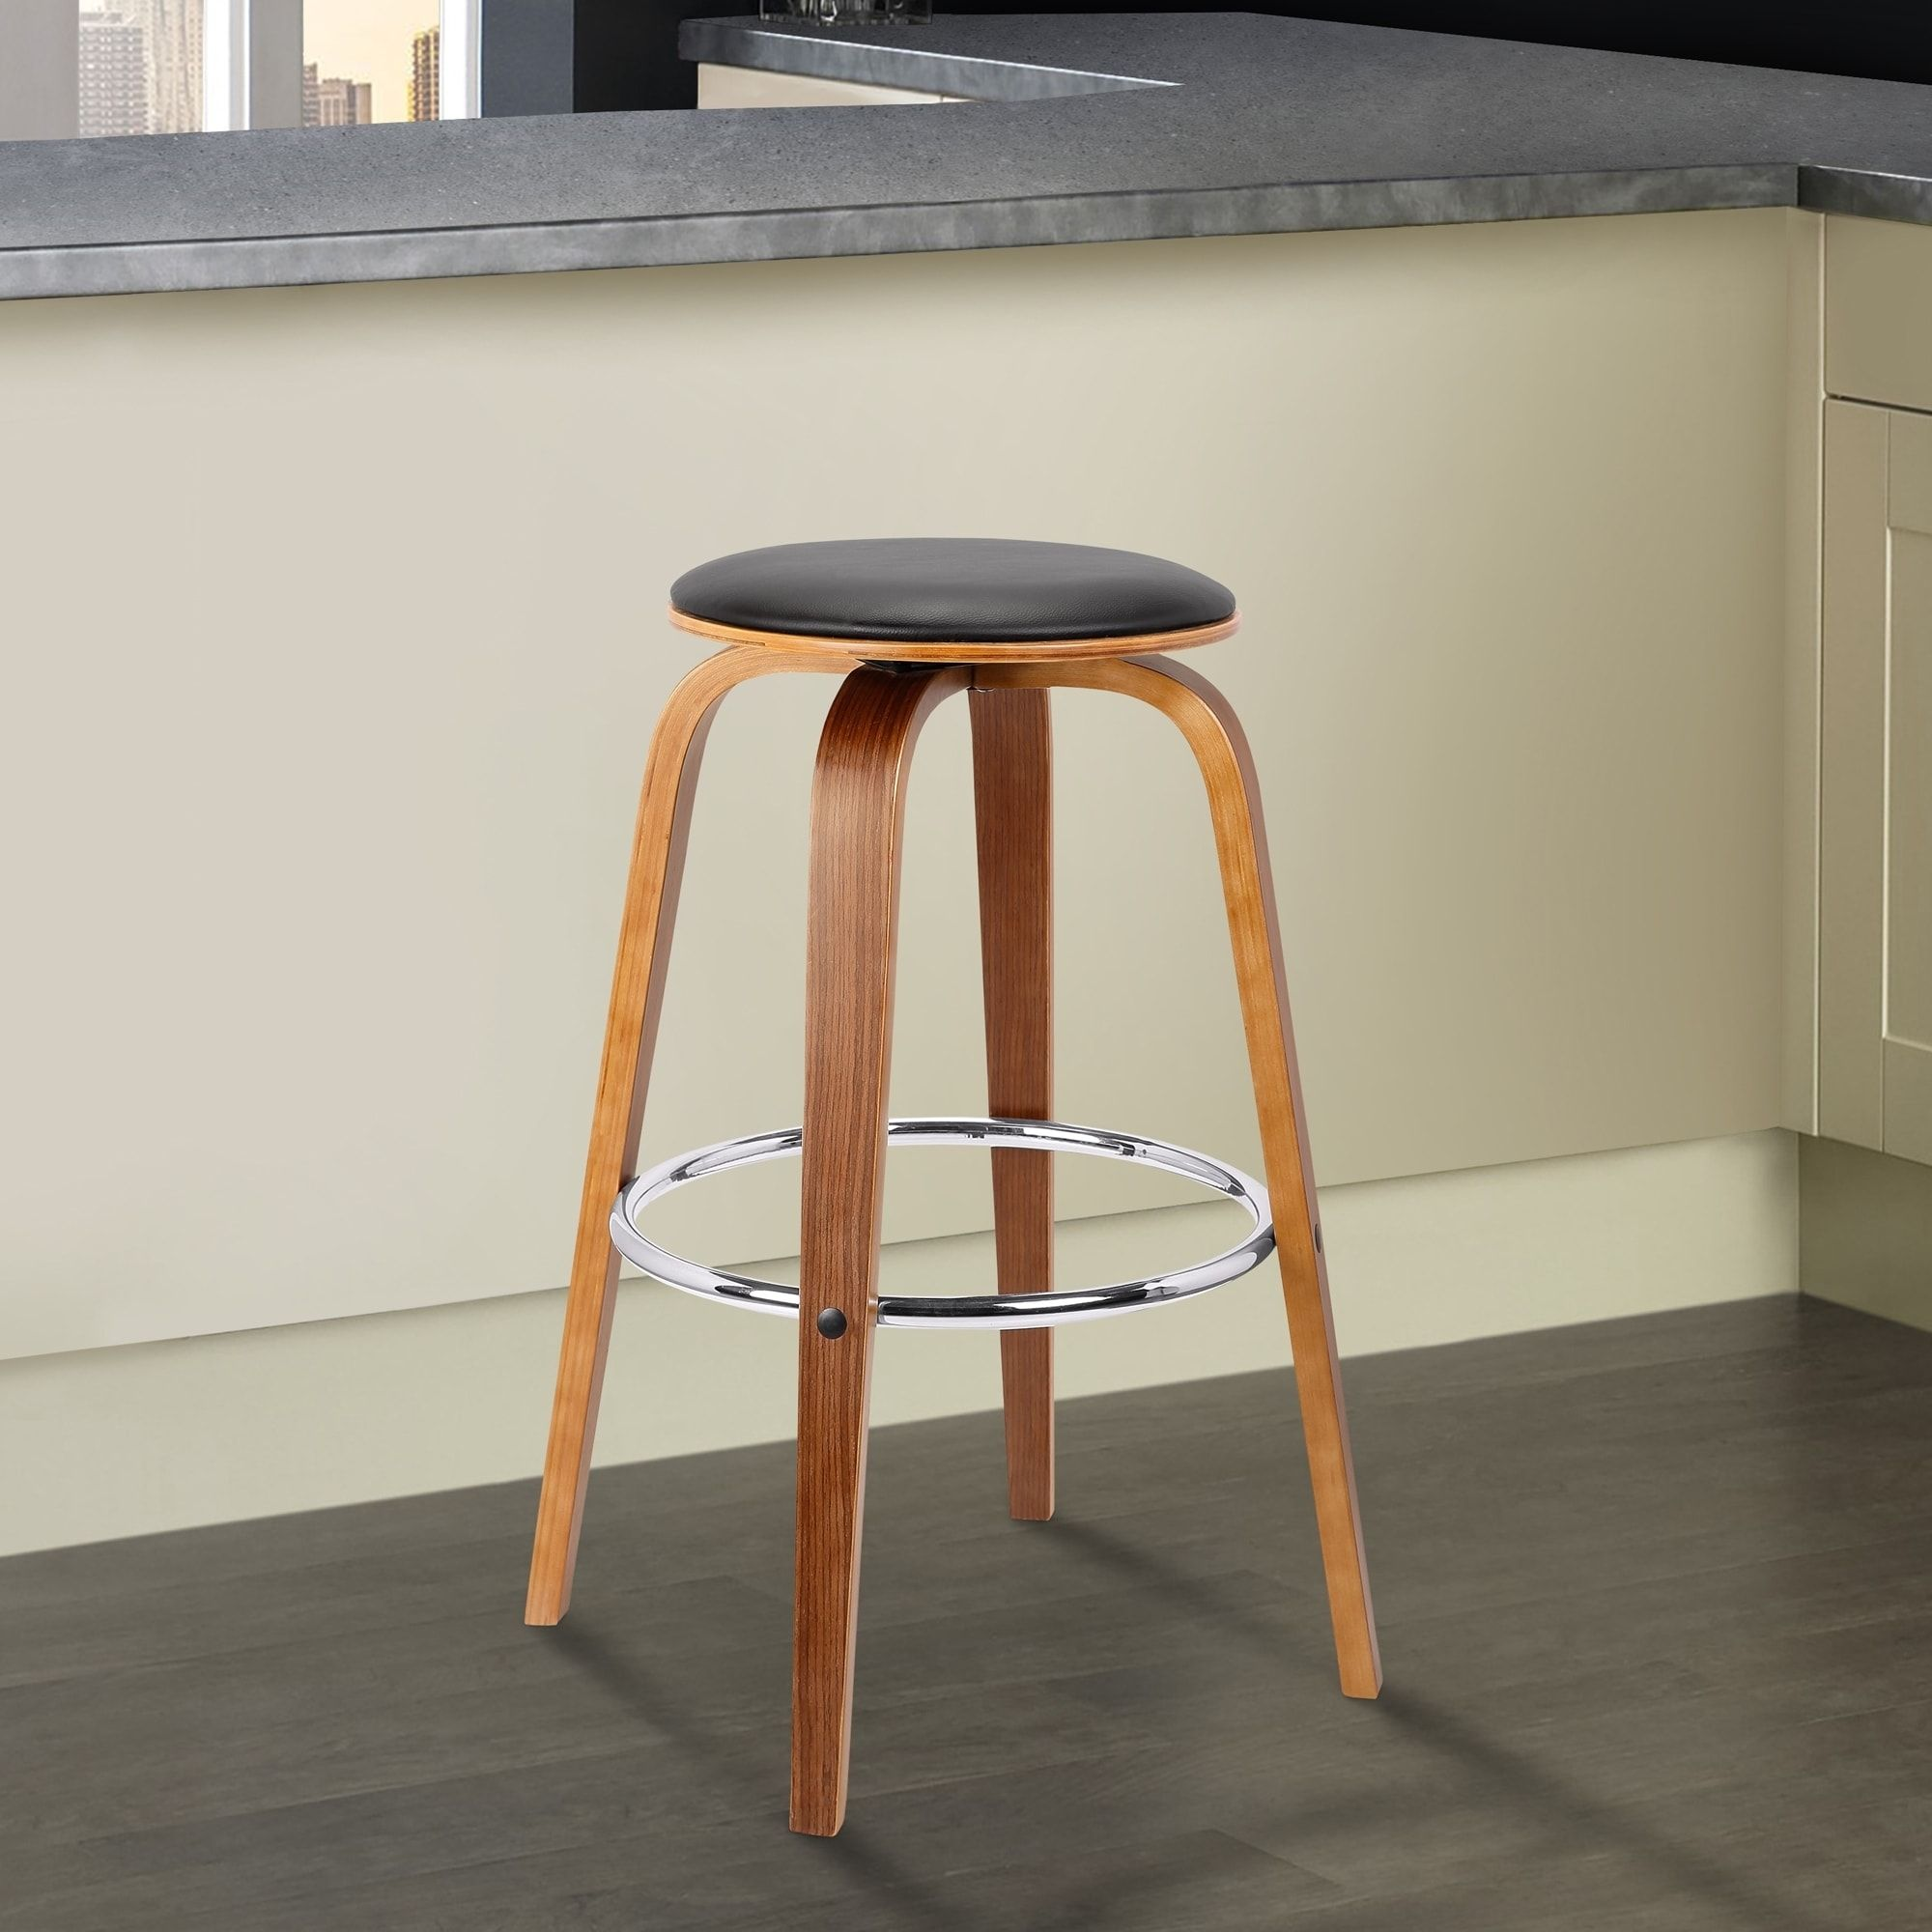 Brussel Mid Century Backless Swivel Wood Barstool In Walnut With